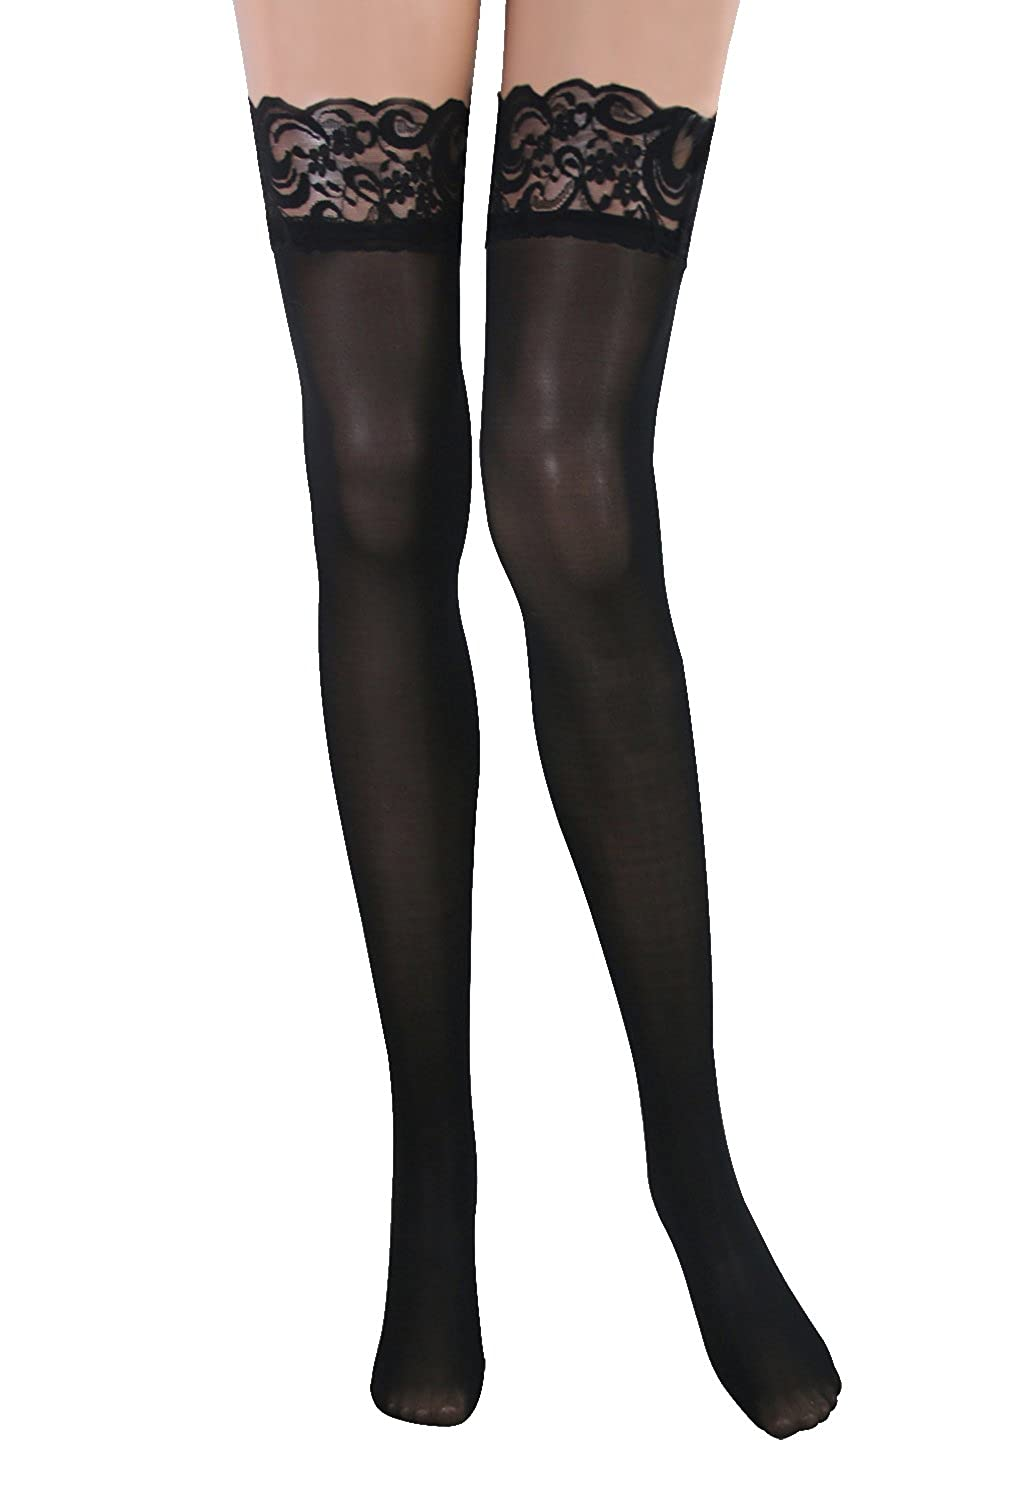 6036a0e76 Amazon.com  Kimring Women s Thigh High Stockings with Silicone Lace Top   Clothing